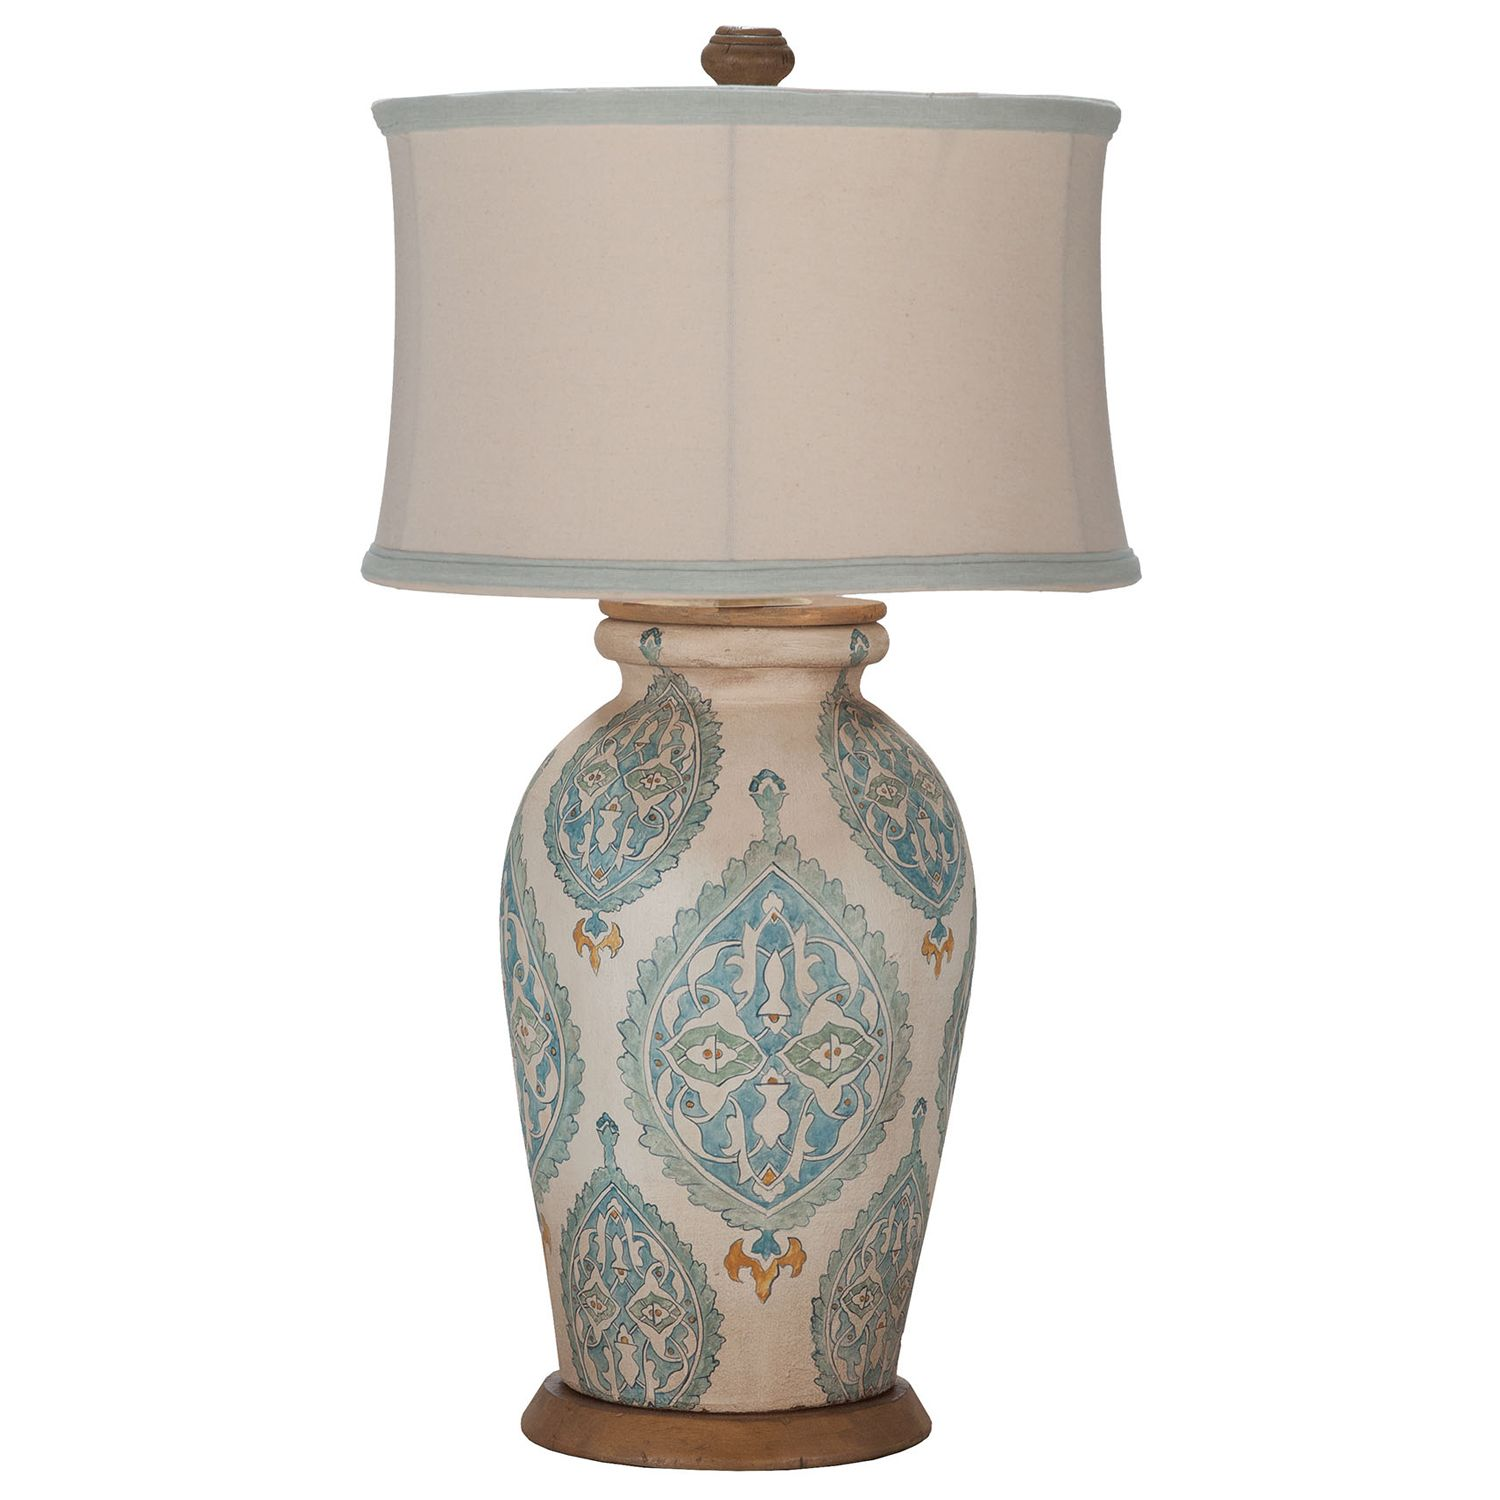 The jaipur table lamp gains inspiration from traditional indian the jaipur table lamp gains inspiration from traditional indian block prints in subtle shades of blue geotapseo Gallery